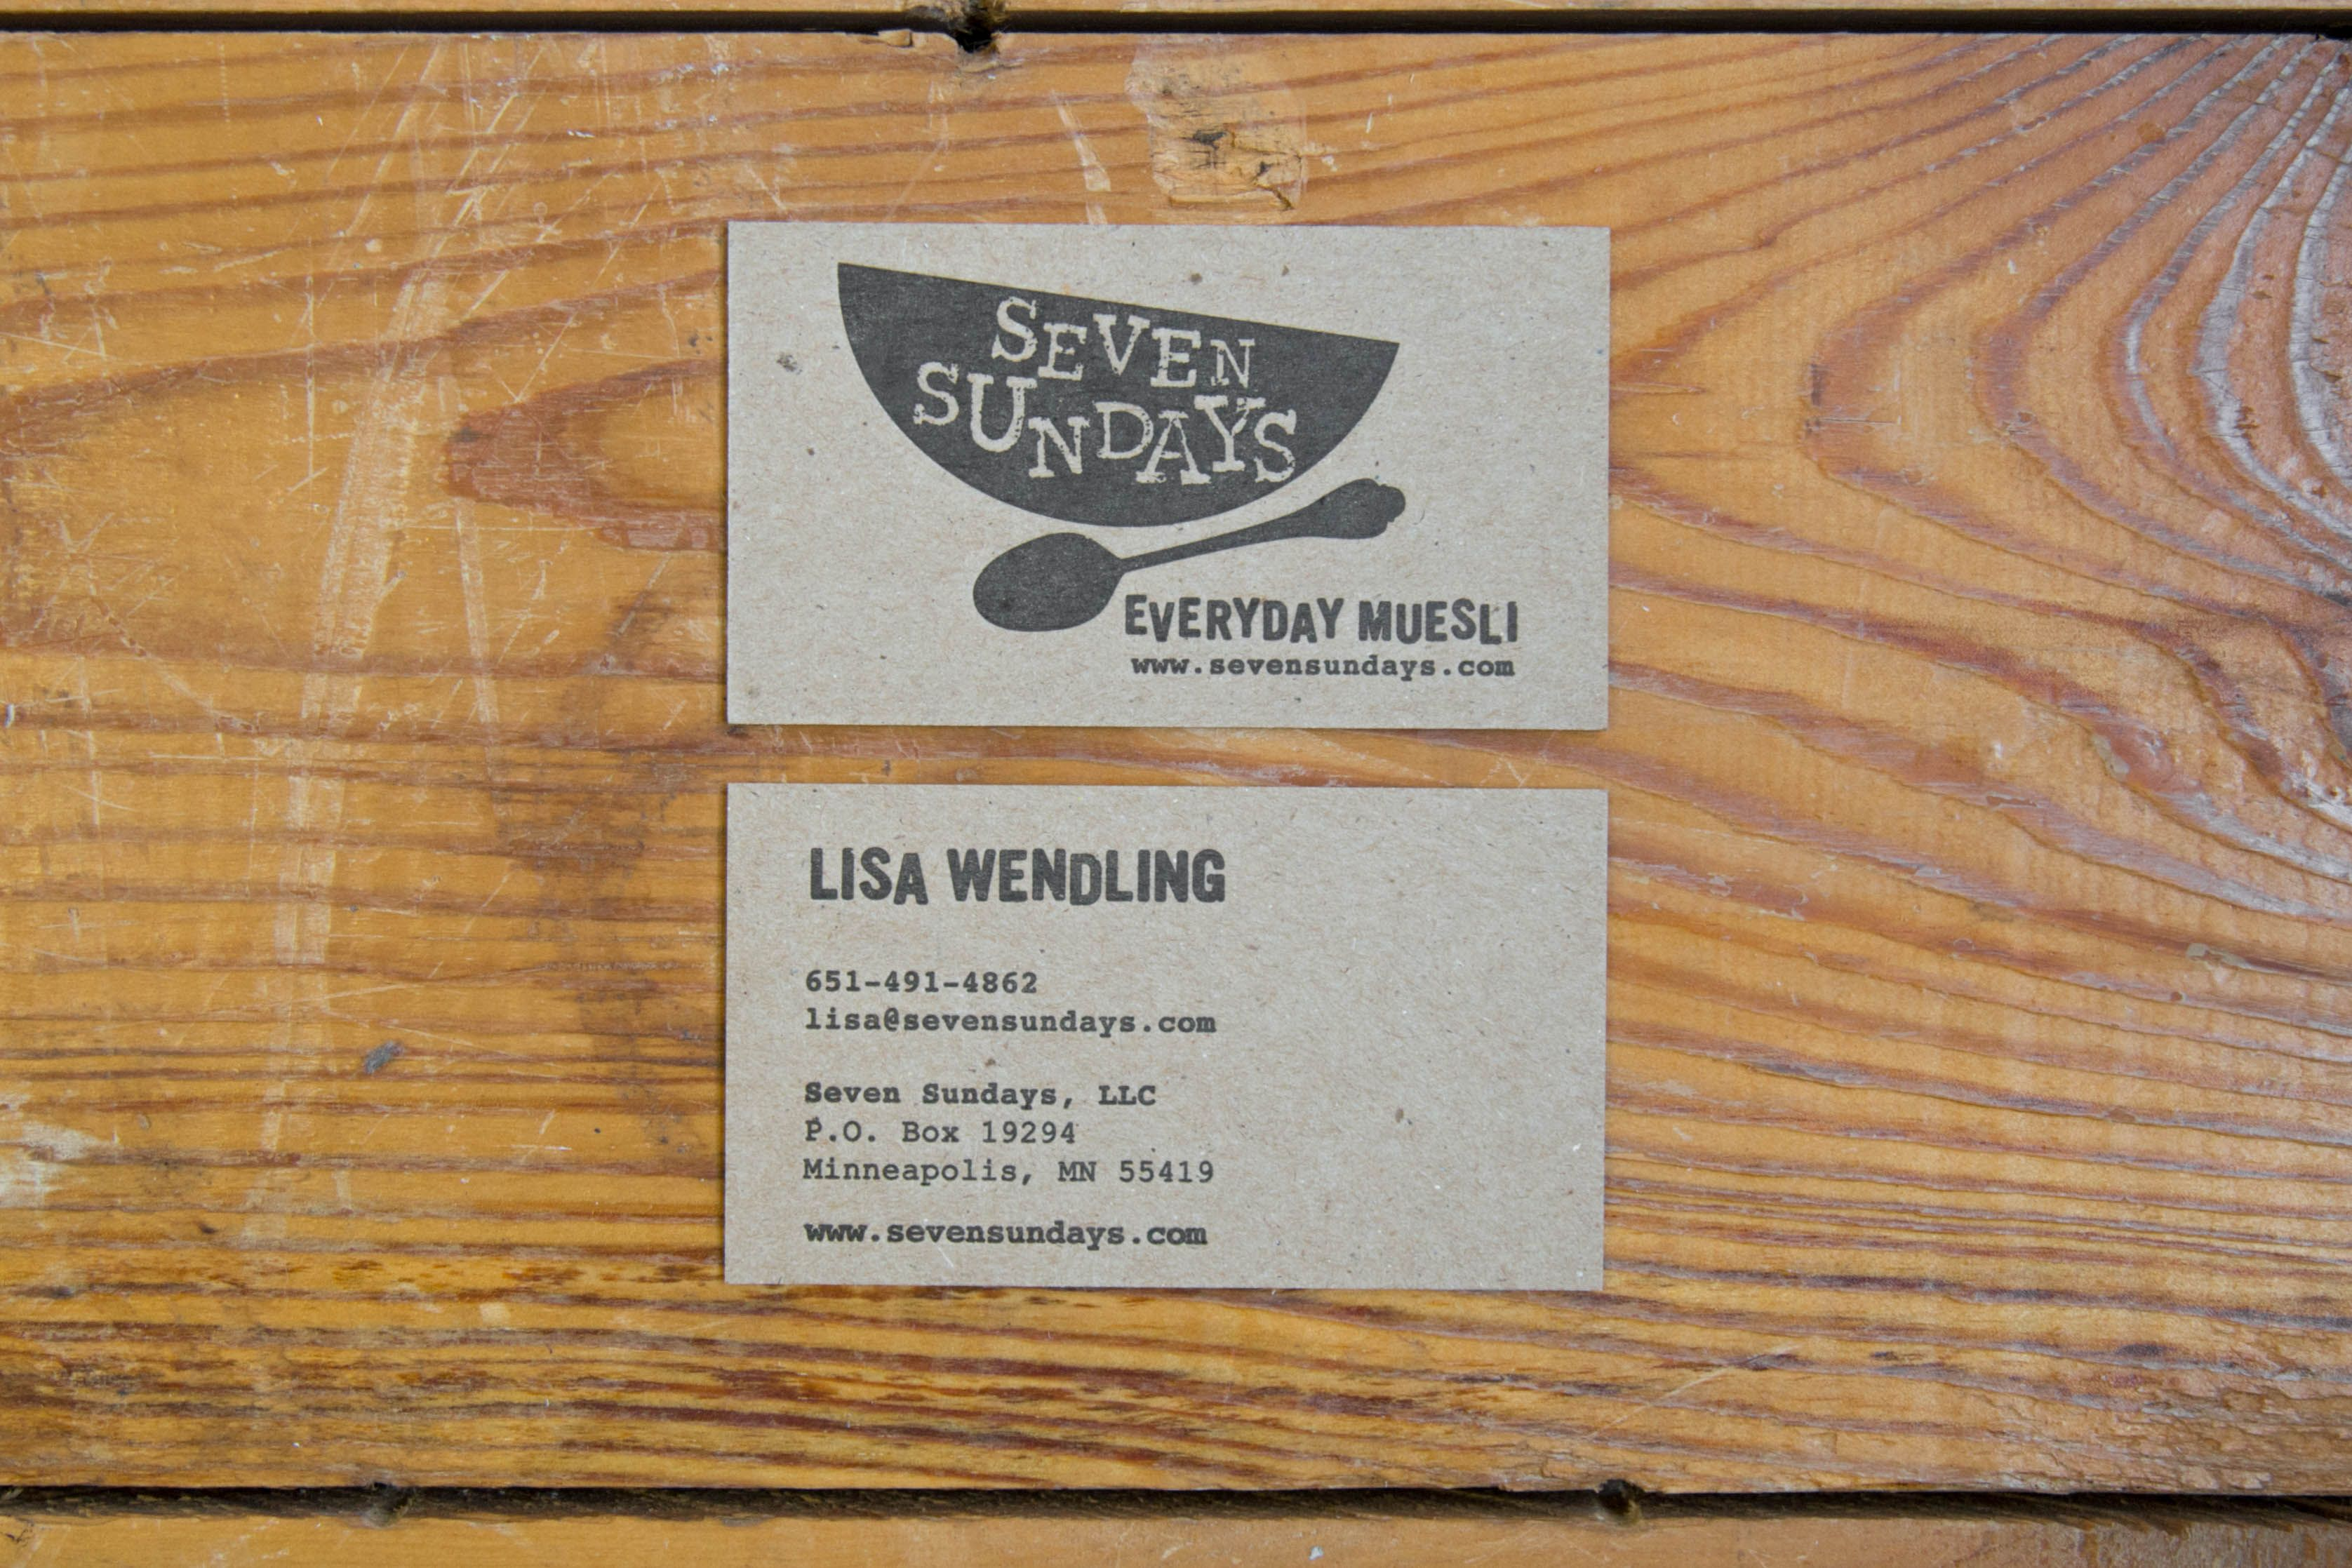 Cute chipboard business cards images business card ideas etadamfo beautiful inexpensive letterpress business cards pictures colourmoves Gallery